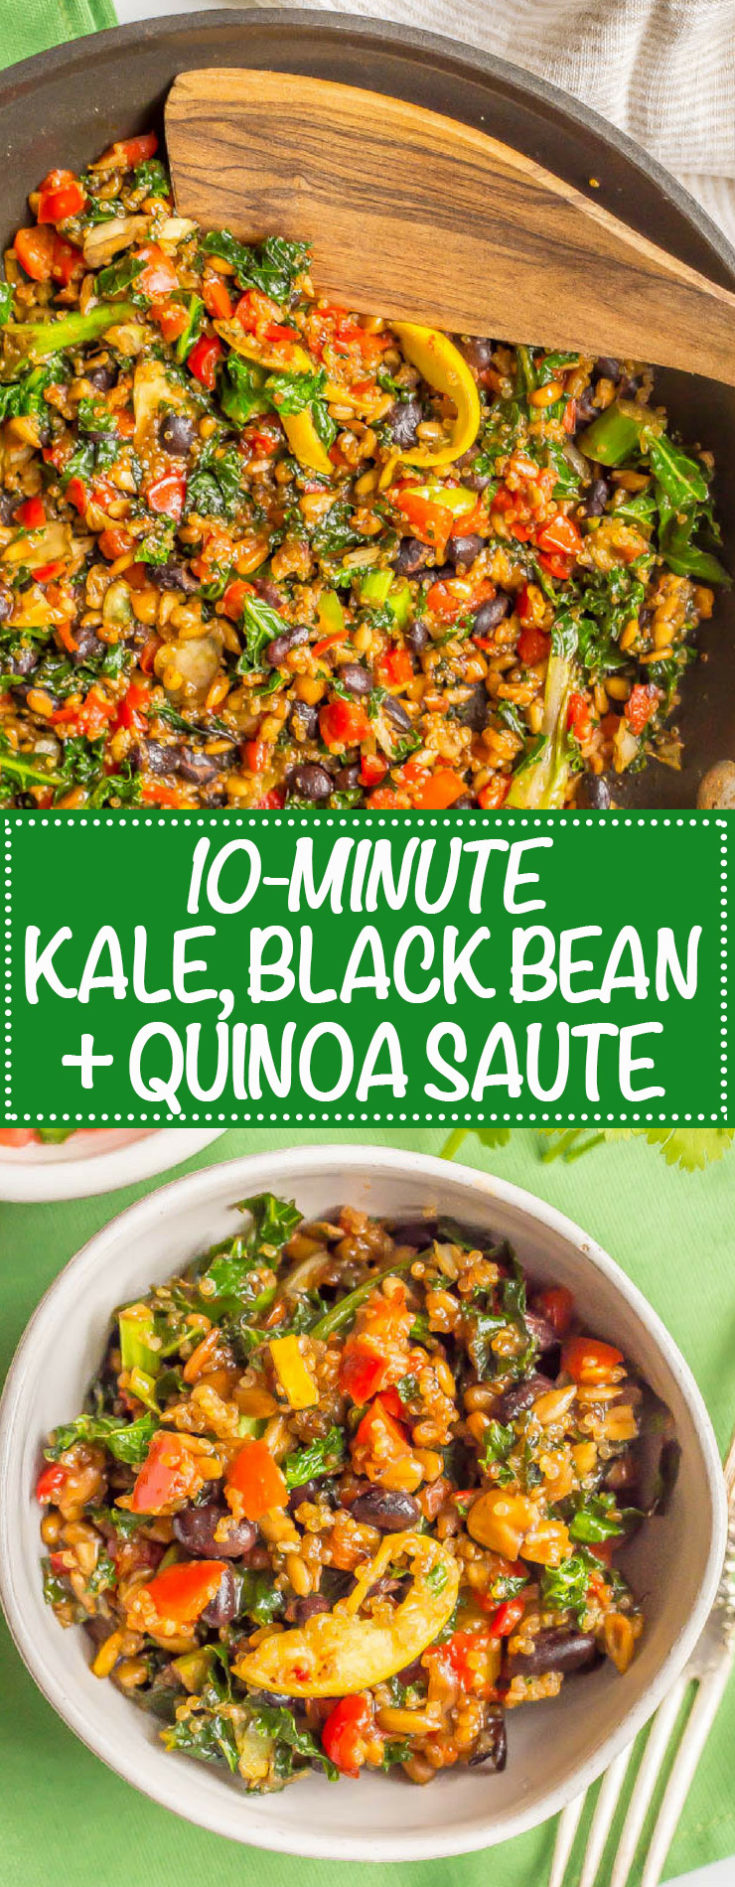 Kale black bean quinoa sauté is a meal kit in a bag that takes less than 10 minutes to cook!